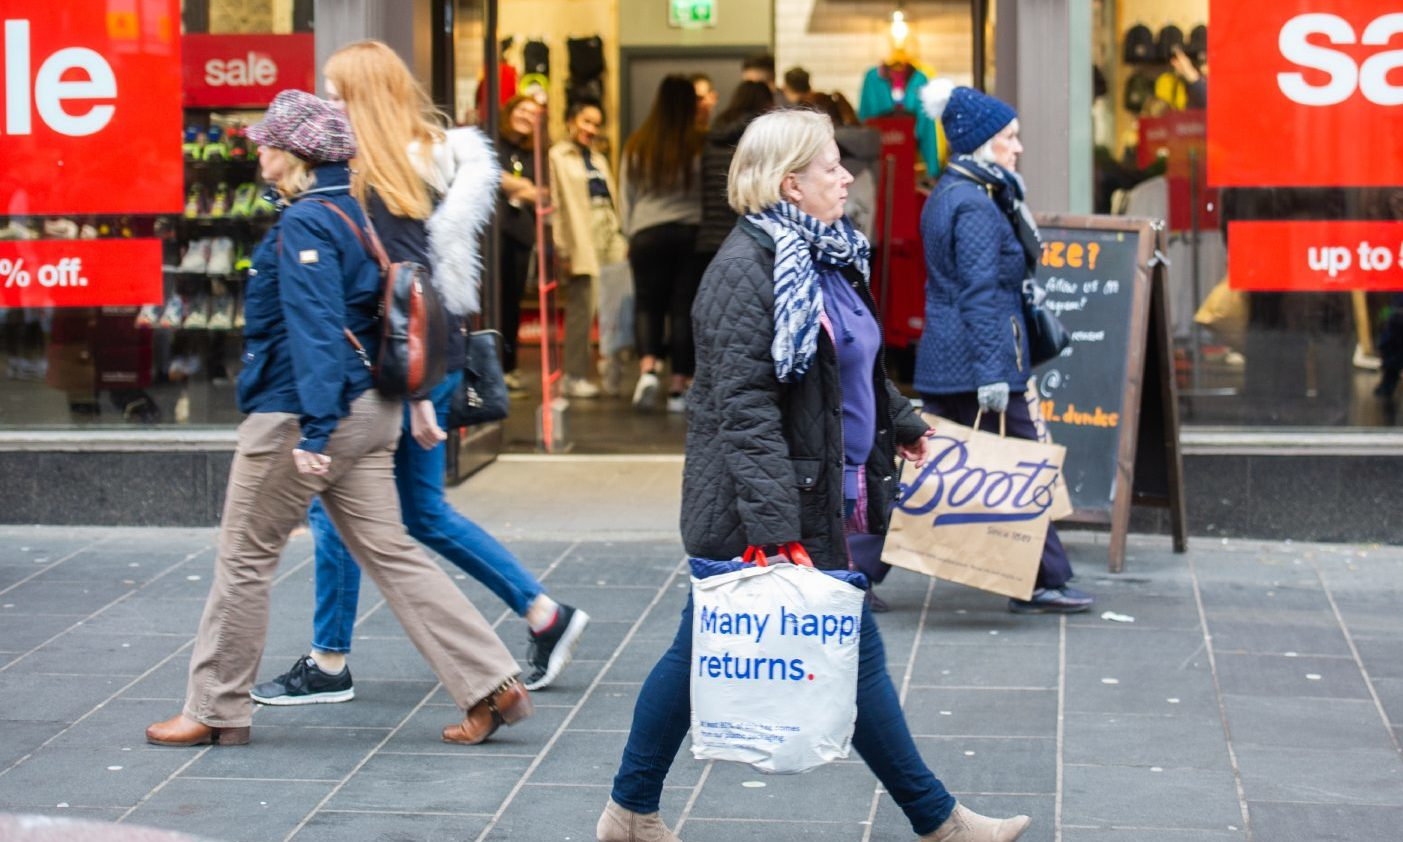 Stock image of the High Street in Dundee.